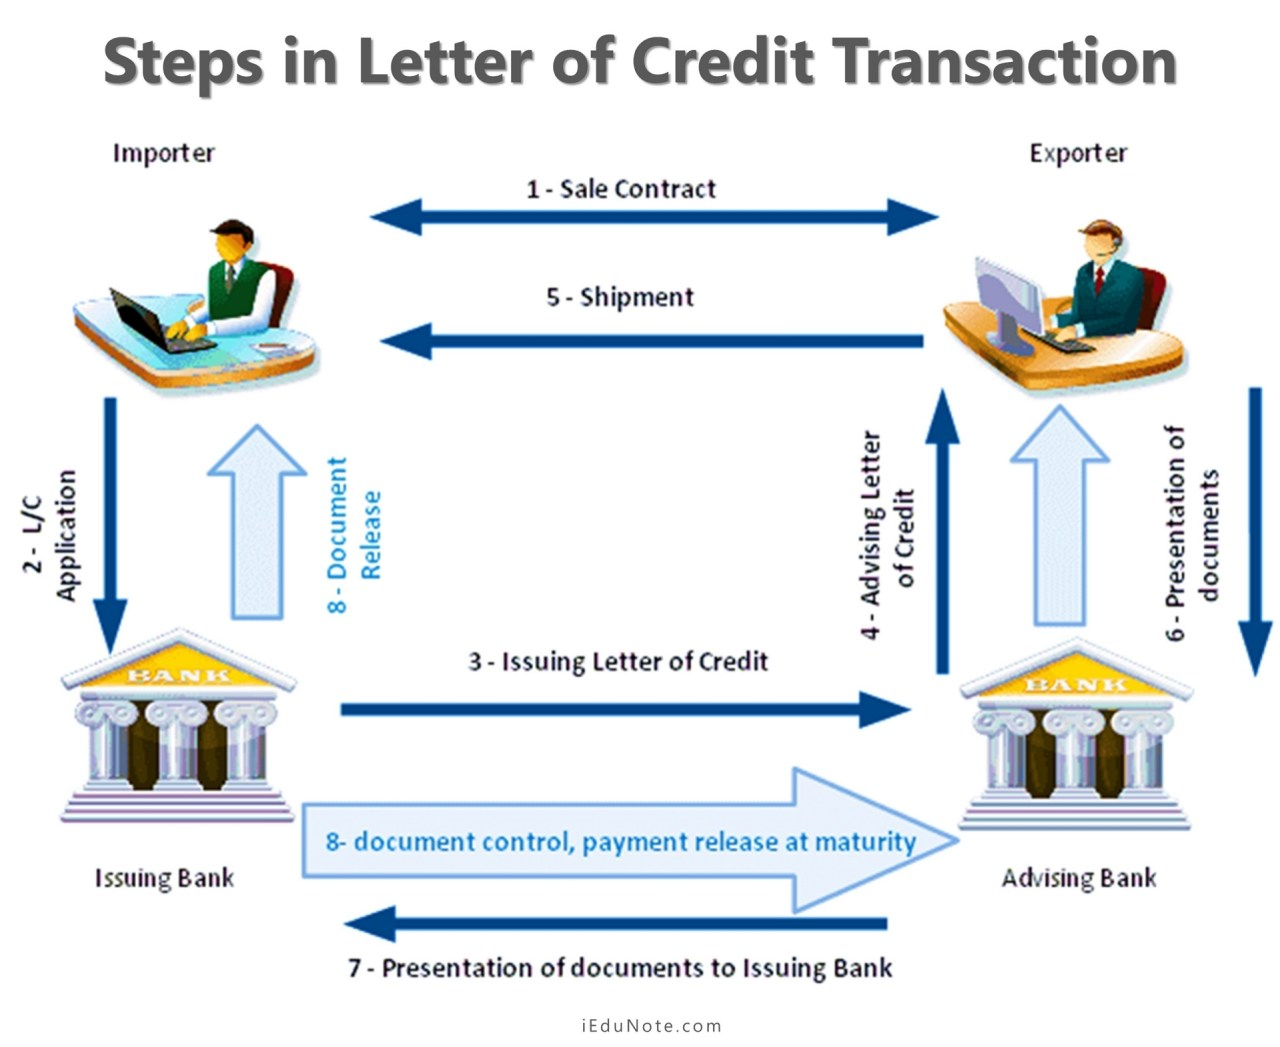 Steps in Letter of Credit Transaction